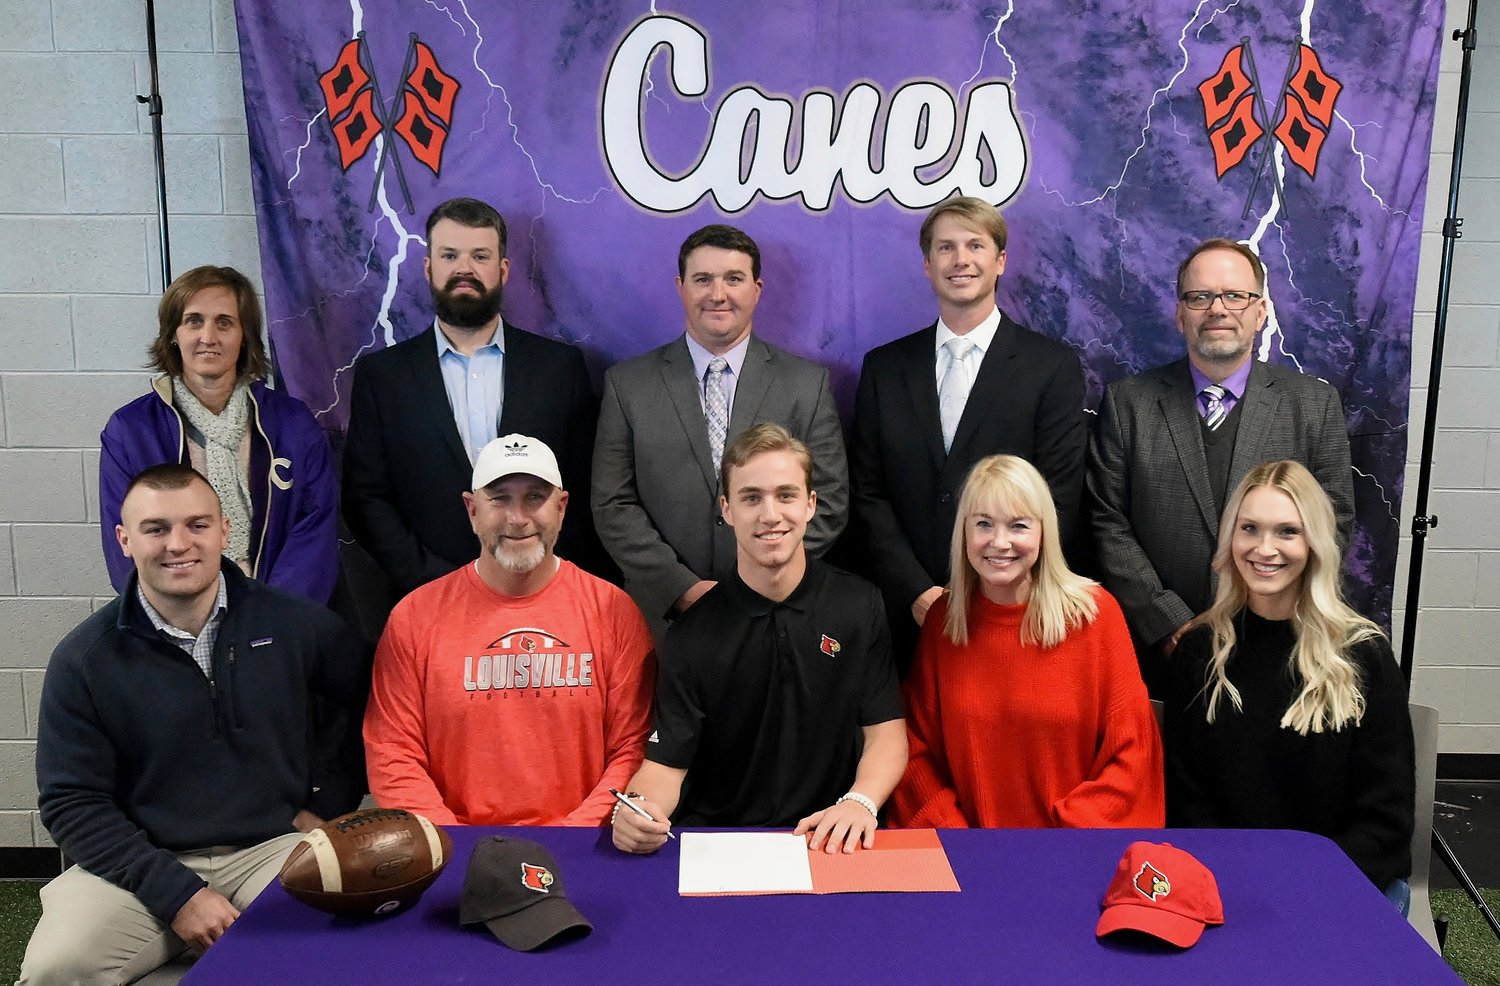 Cartersville High School senior Tee Webb signed Wednesday to play football at the University of Louisville. On hand for the signing were, from left, front row, Gabe Freeman, brother-in-law; Tracy Webb, father; Marion Webb, mother; and Haley Freeman, sister; back row, Shelley Tierce, CHS principal; Dusty Phillips, assistant CHS football coach; Michael Bail, CHS assistant football coach; Conor Foster, CHS head football coach; and Darrell Demastus, CHS athletic director.